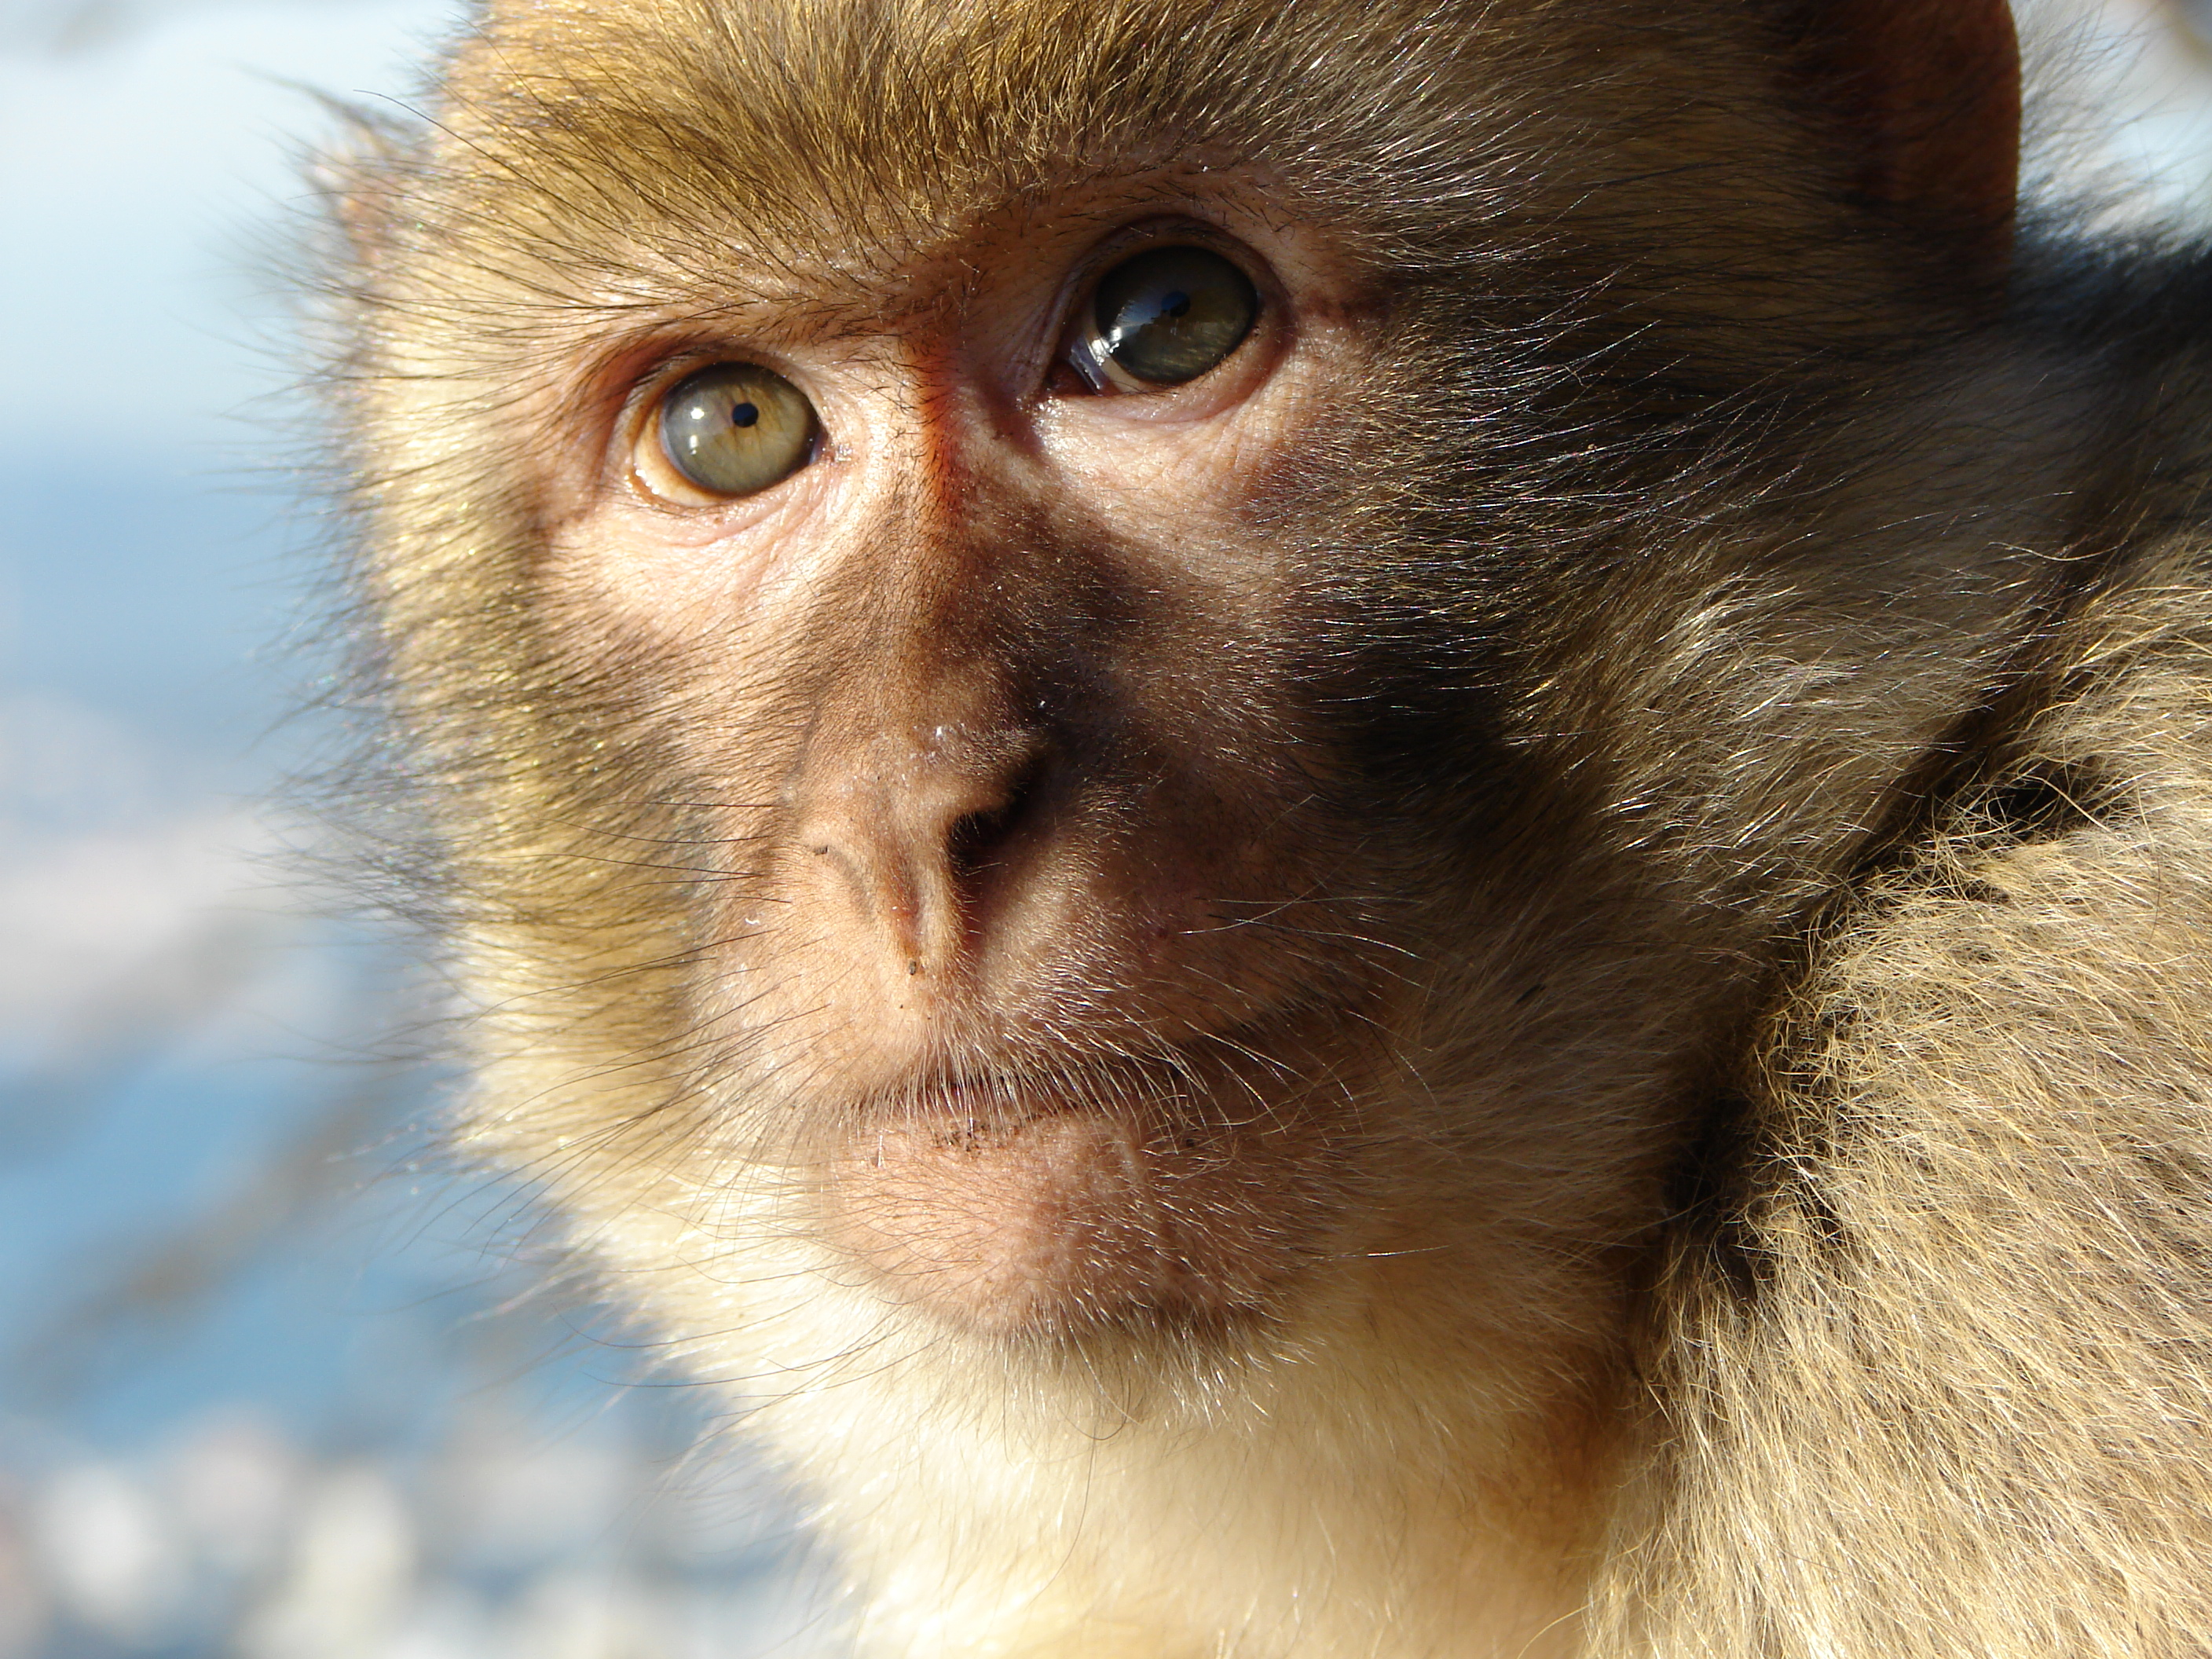 Close-up of macaque monkey